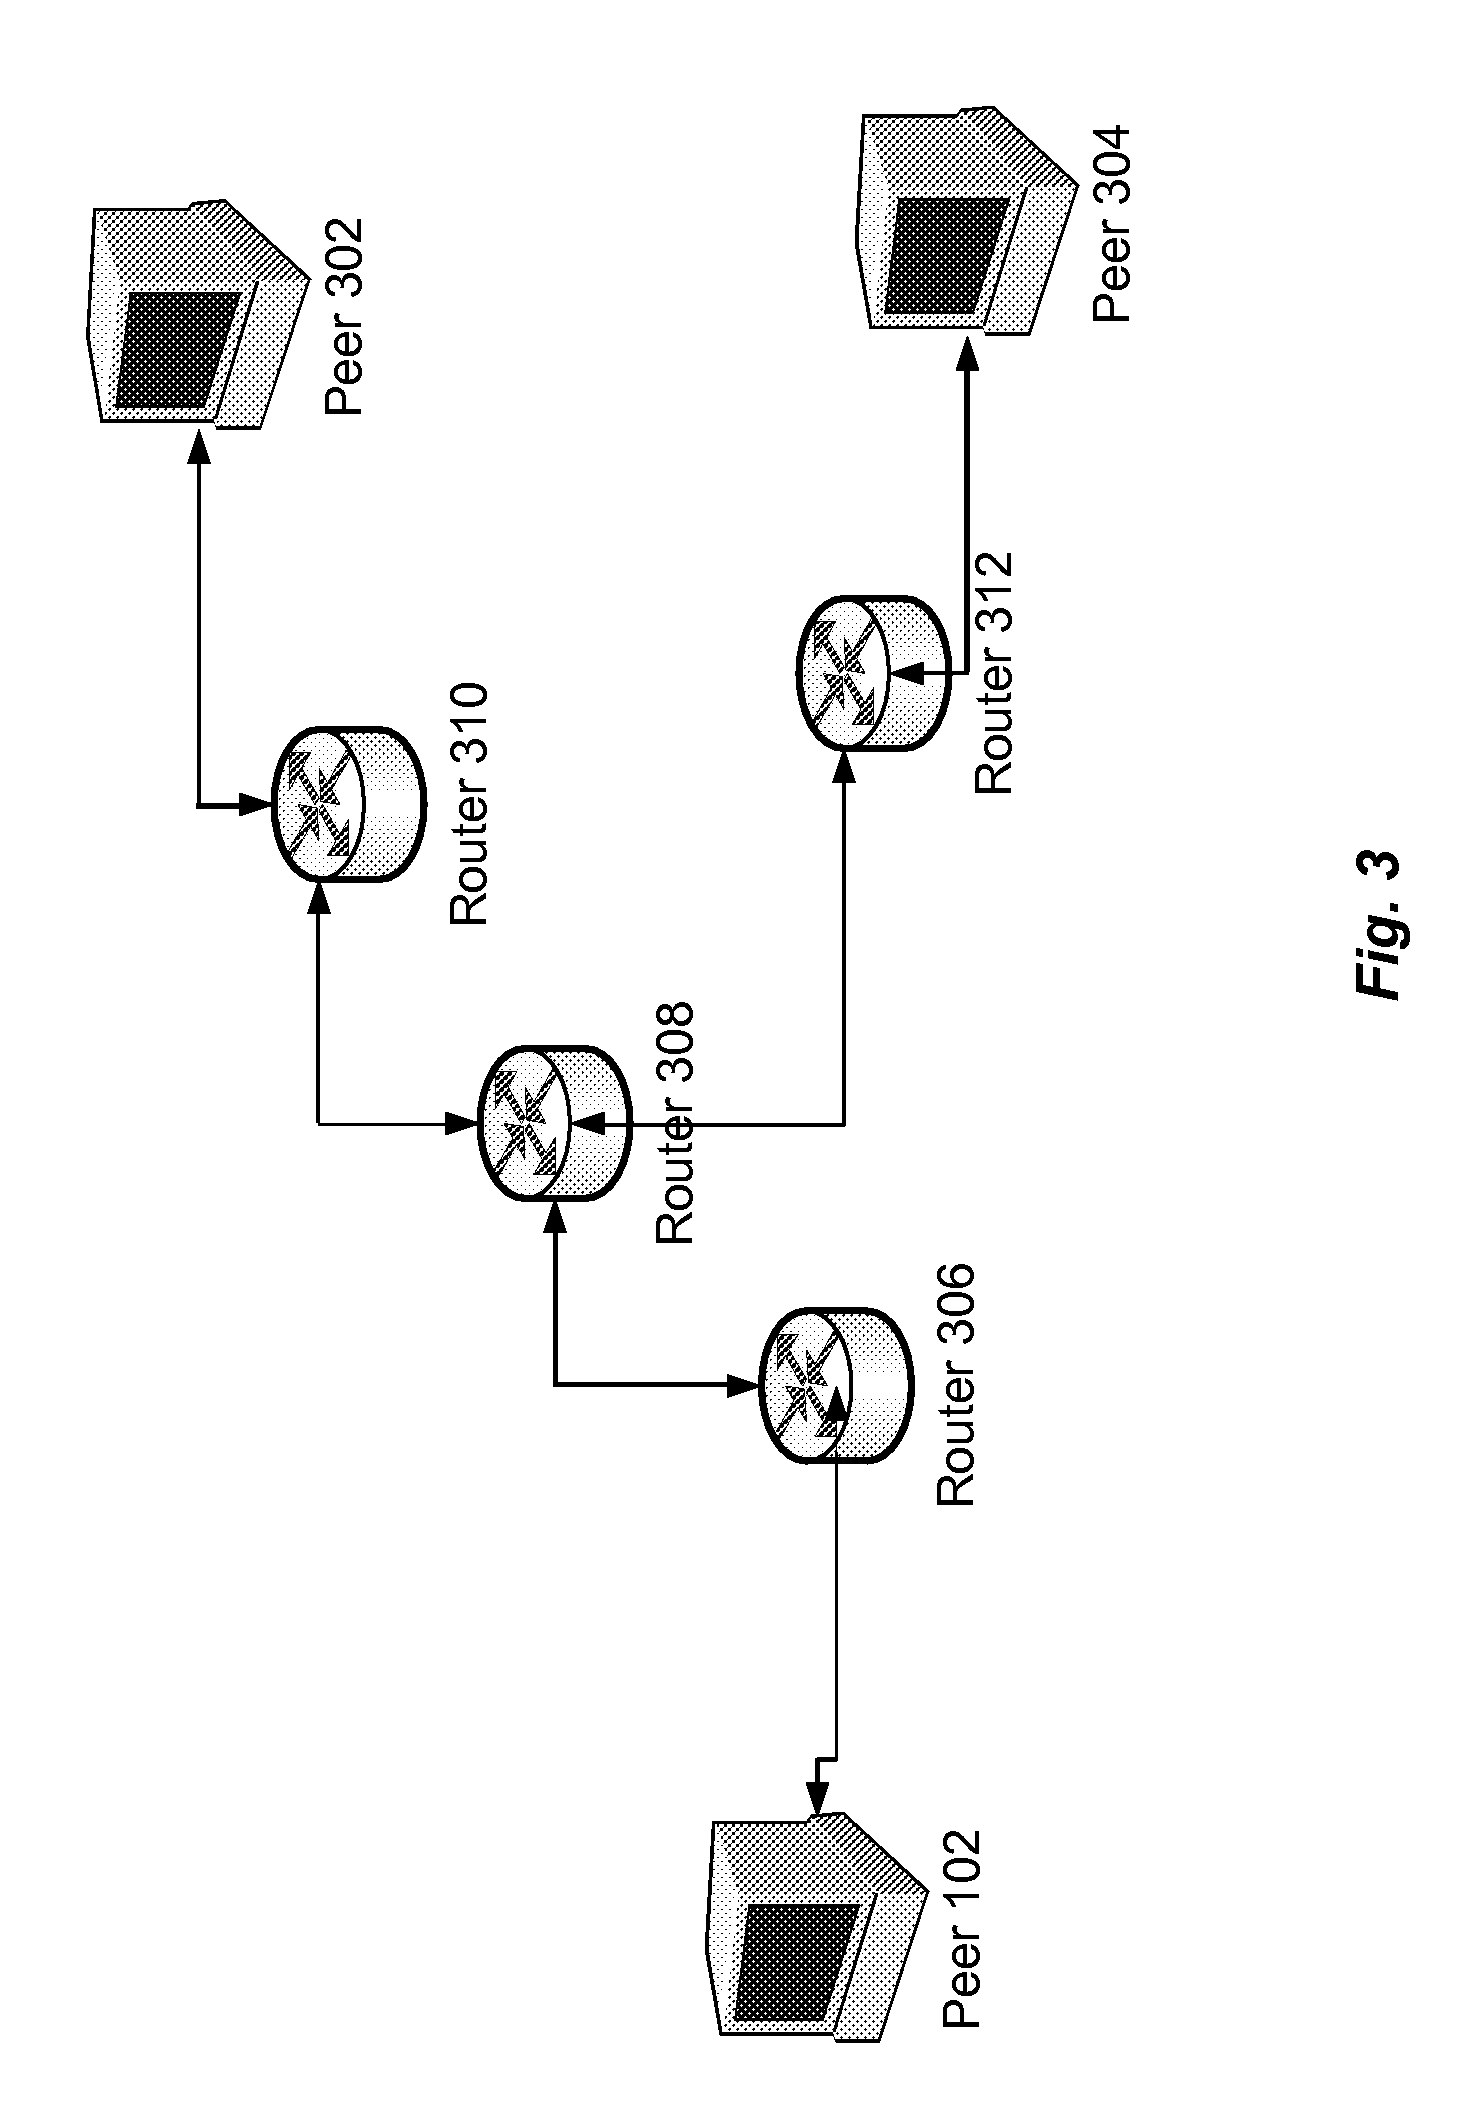 aqm a mechanism of congestion control in networks 1 international journal of information technology and knowledge management july-december 2010, volume 2, no 2, pp router control mechanism for congestion avoidance in cdma based ip network vsumalatha1 & tsatya savithri2 cellular wireless networks have become an indispensable part of the.